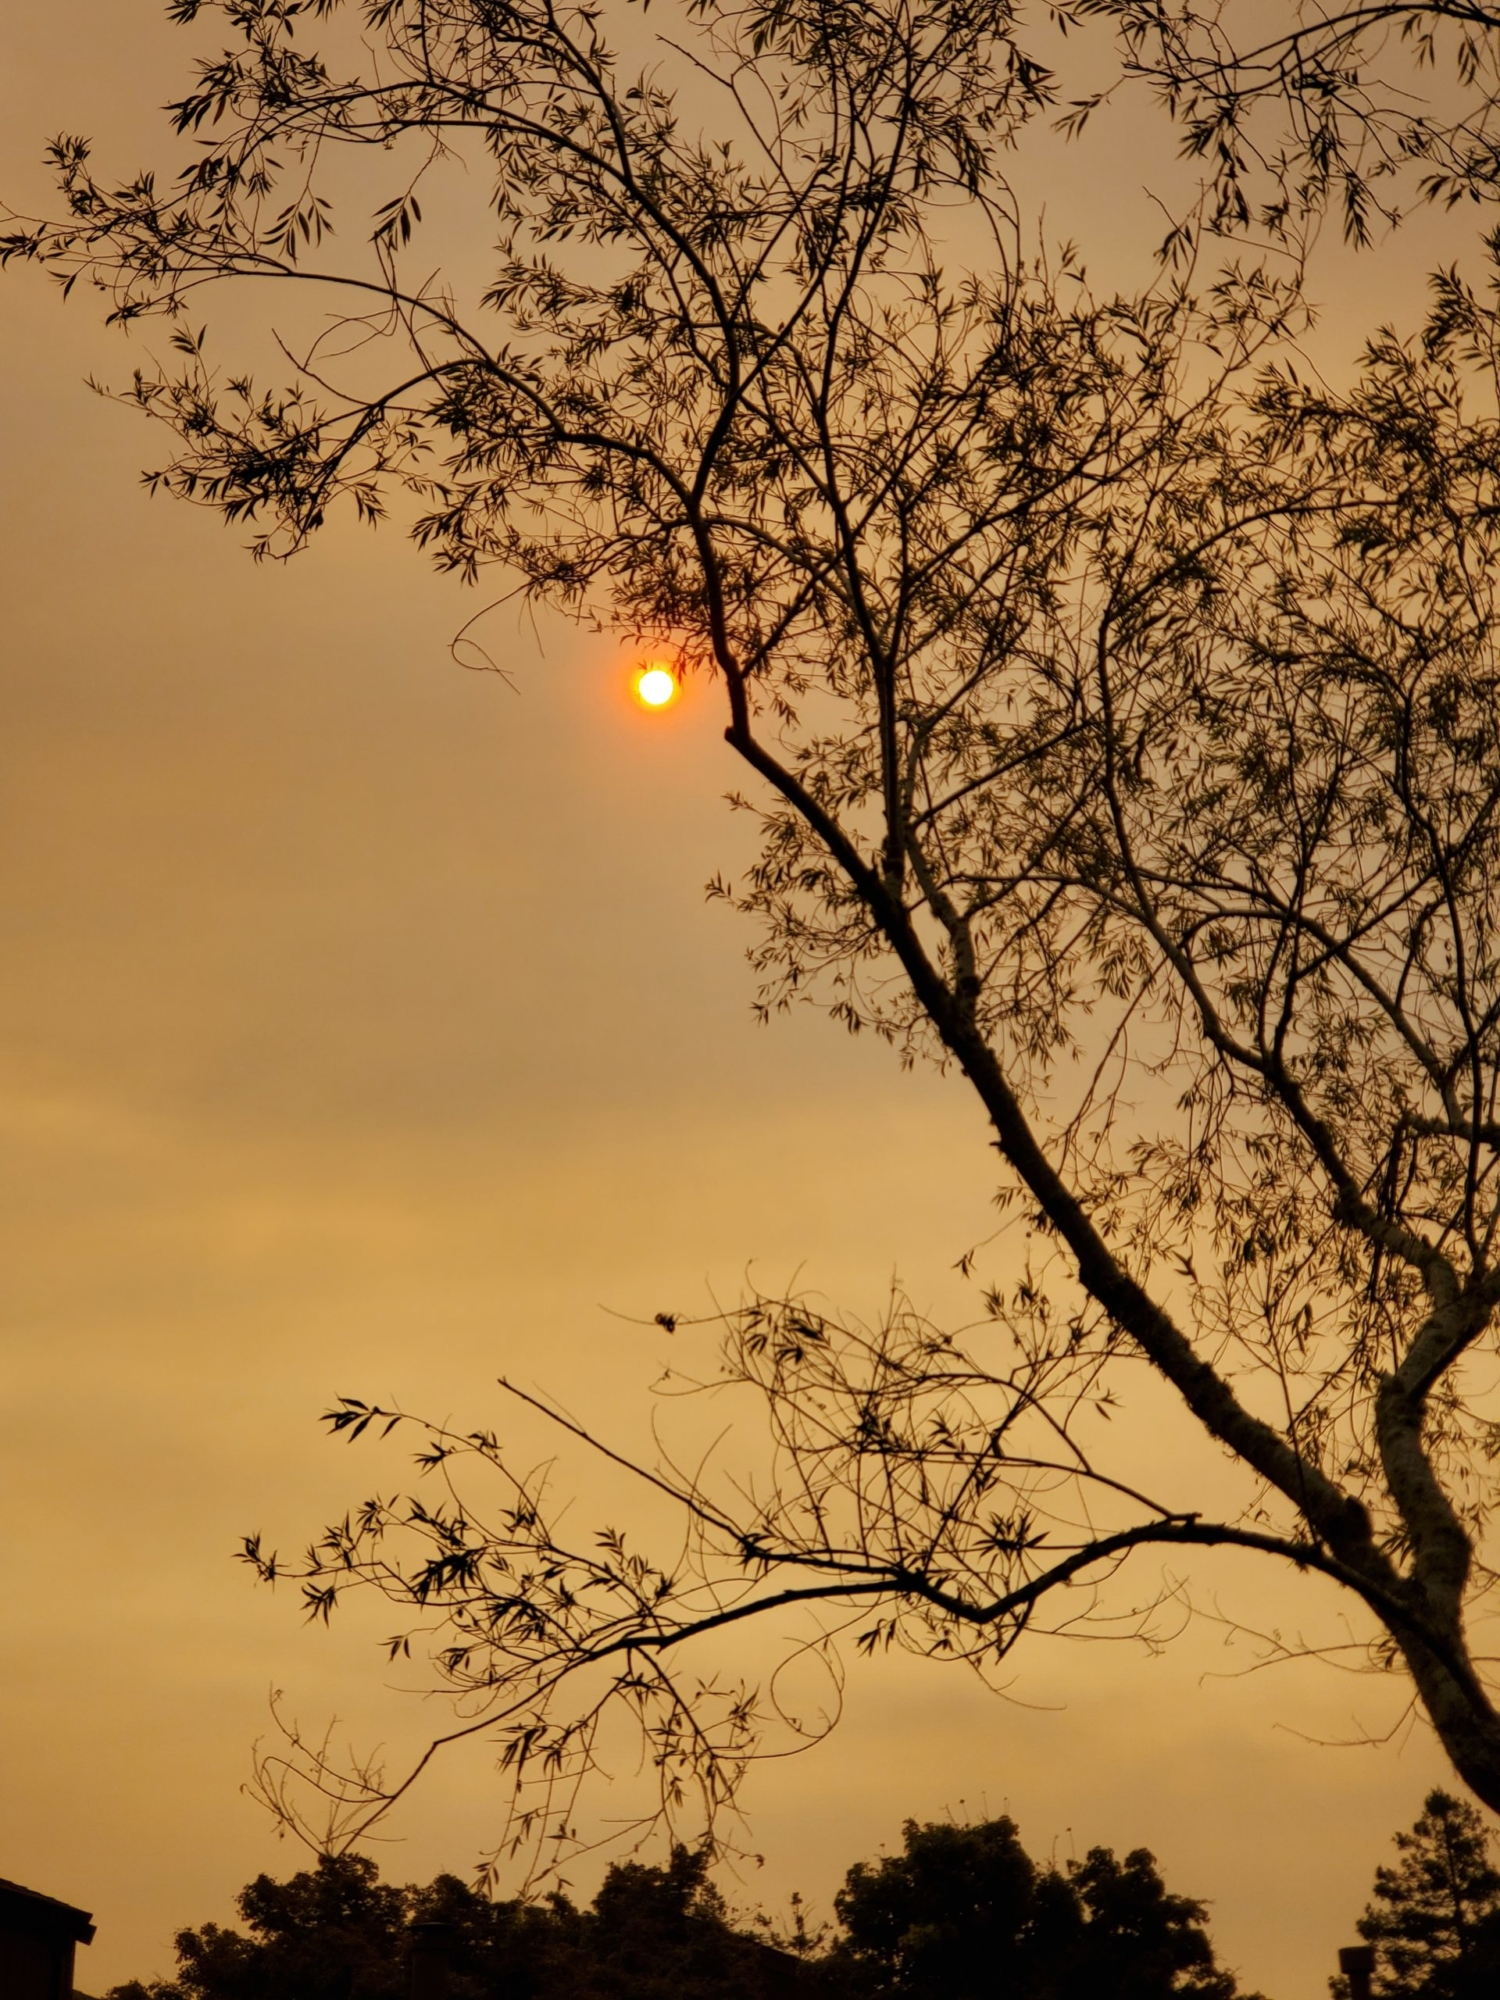 A small orange glow on a brown sky is slightly obscured by the silhouette of a reaching branch.